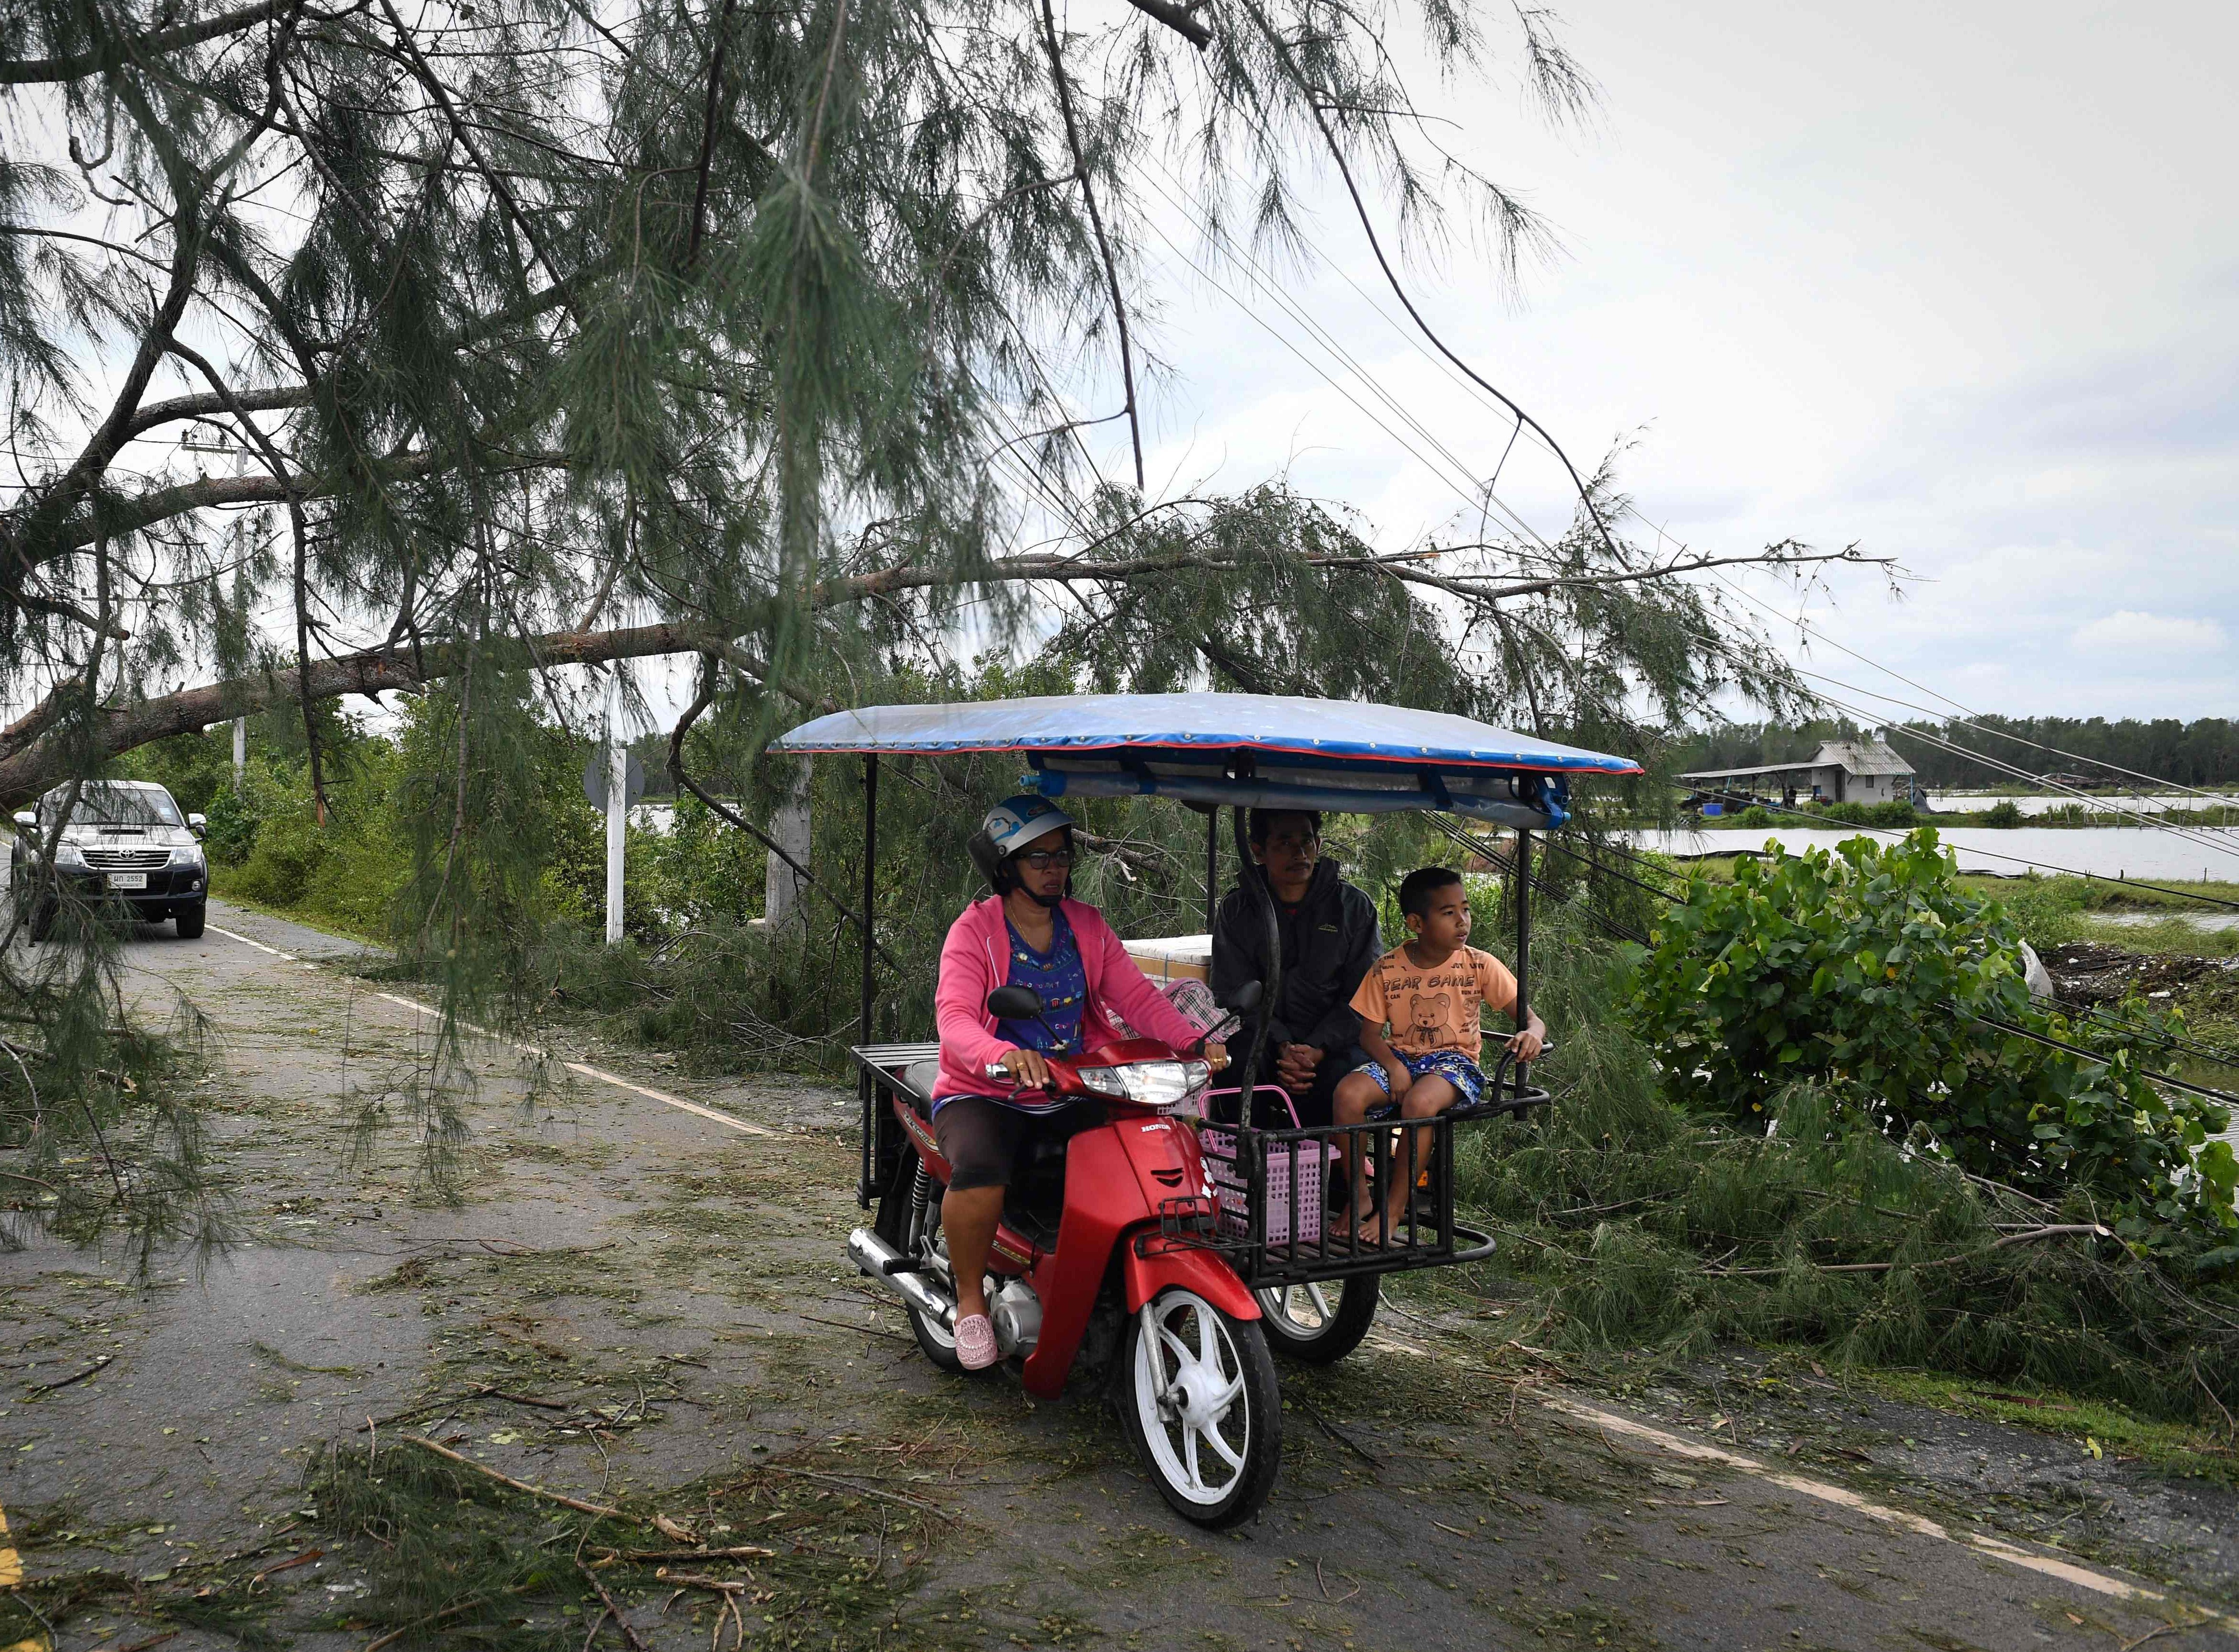 Residents drive under a fallen tree in the aftermath of tropical storm Pabuk in the southern Thai province of Nakhon Si Thammarat on Jan. 5, 2019. Floods and blackouts caused by Tropical Storm Pabuk left nearly 30,000 people in evacuation shelters across southern Thailand on January 5, as relieved tourists stranded on islands further north were spared the worst and began to plot routes home.